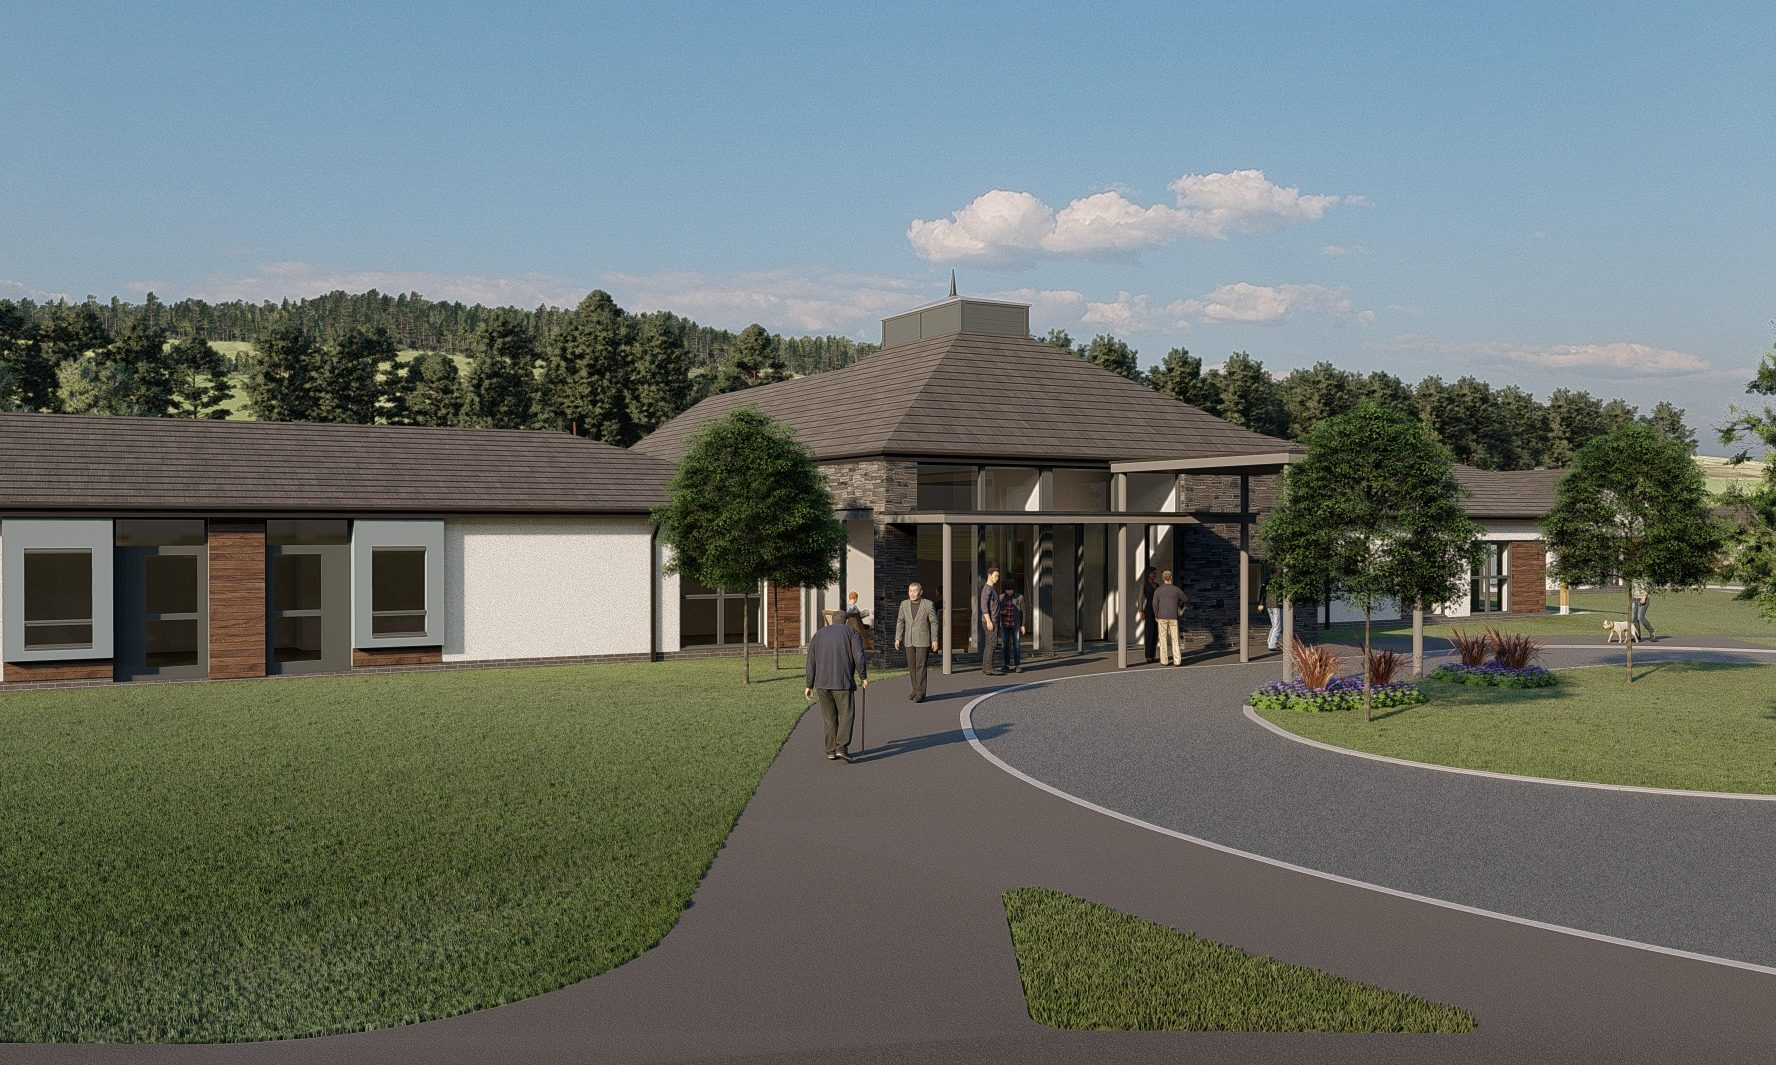 An artists' impression of how the dementia care centre near Alyth could look